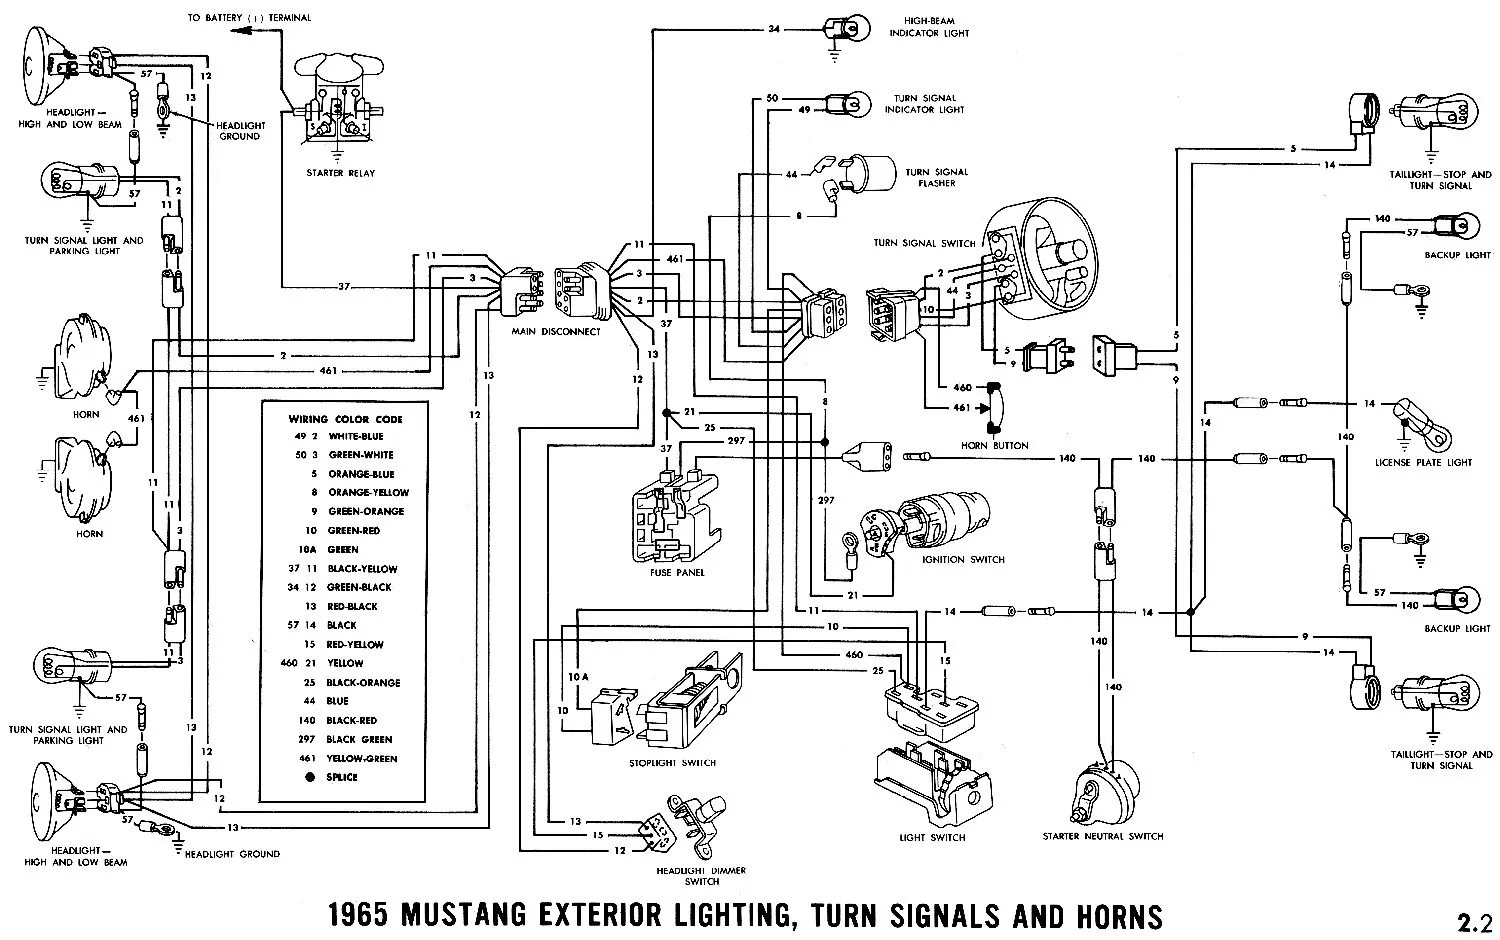 hight resolution of 65 mustang turn signal wiring diagram wiring diagram sheet 1965 mustang wiring diagrams average joe restoration